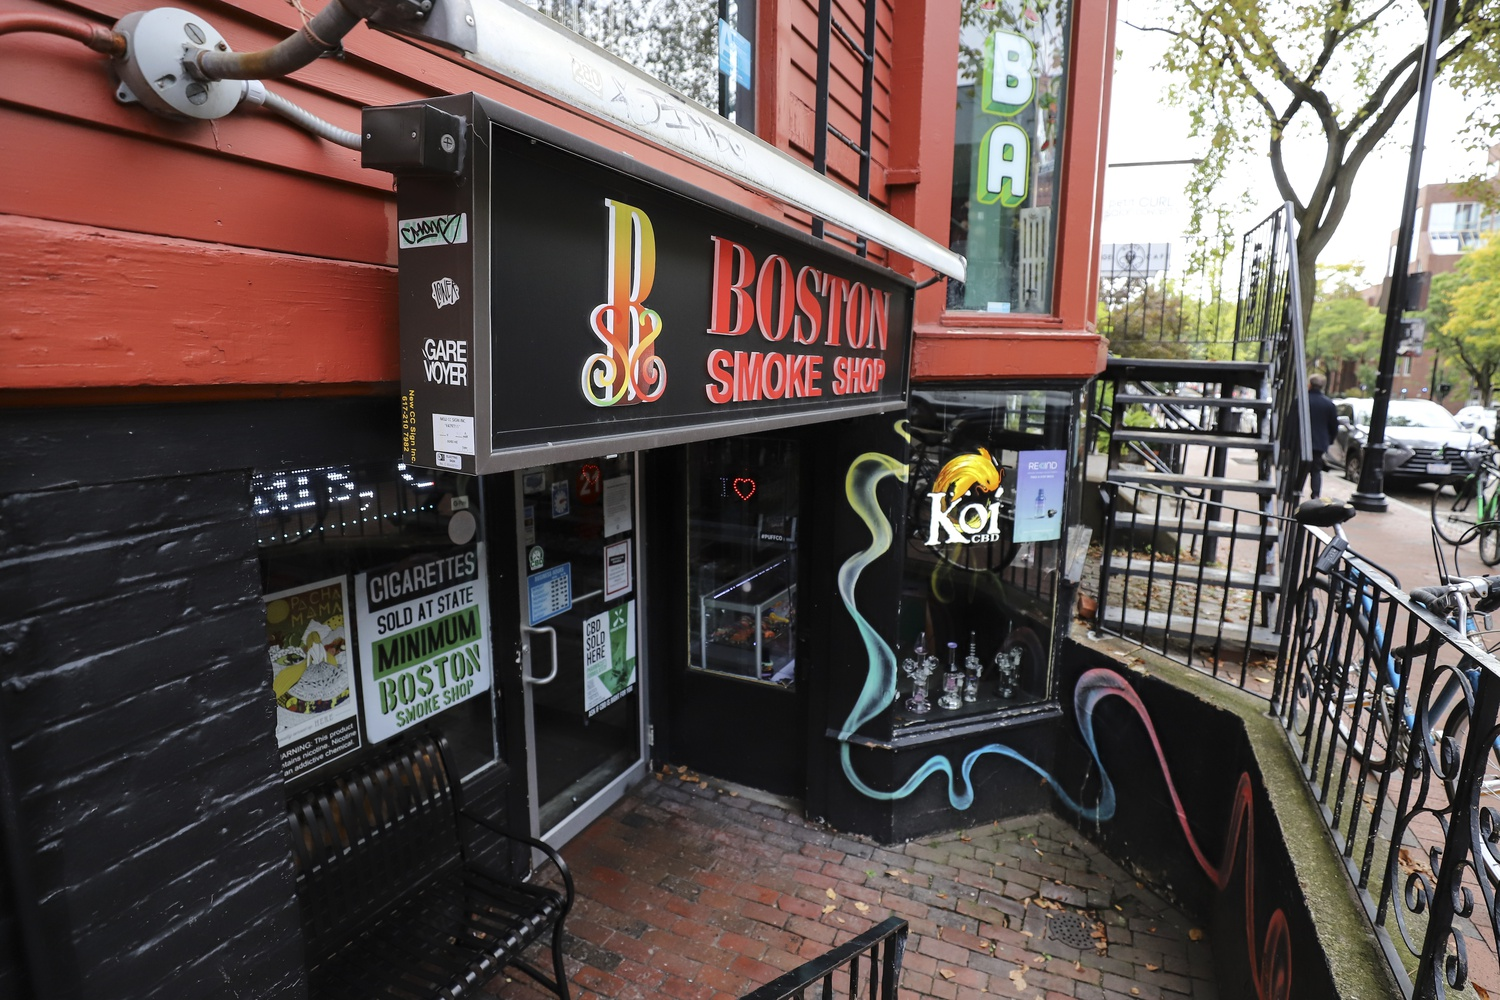 Massachusetts' emergency ban on the sale of all vaping products will affect businesses like Boston Smoke Shop, which is located on JFK Street near Harvard Square.